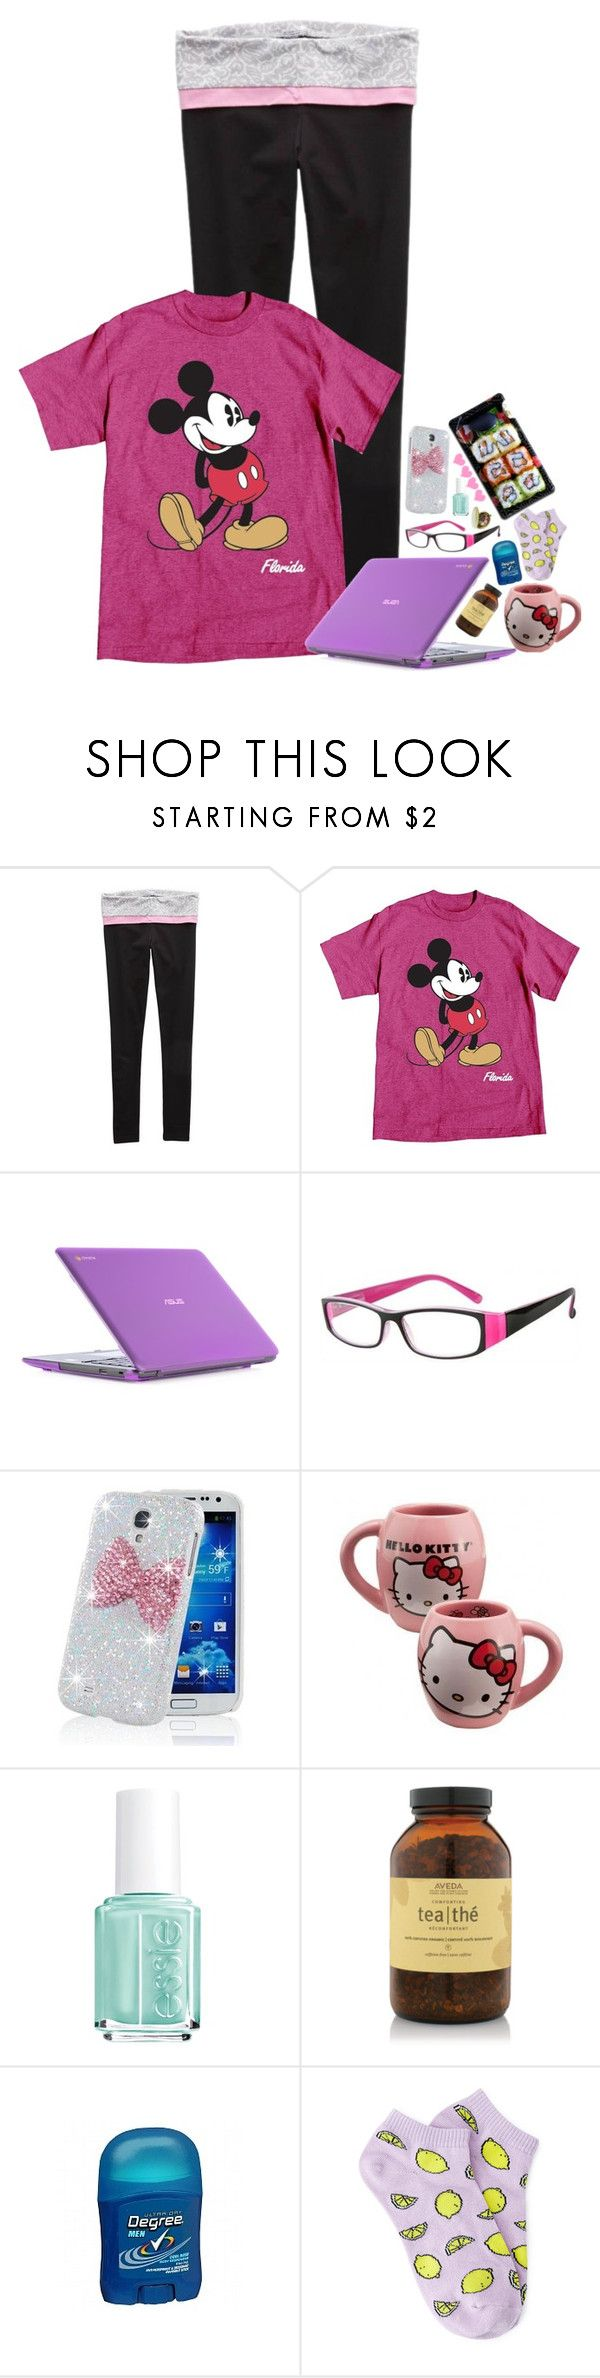 """Untitled #1046"" by emmzizleez888 ❤ liked on Polyvore featuring Aerie, Disney, ASUS, Samsung, Hello Kitty, Essie, Aveda, Forever 21, Pieces and vintage"